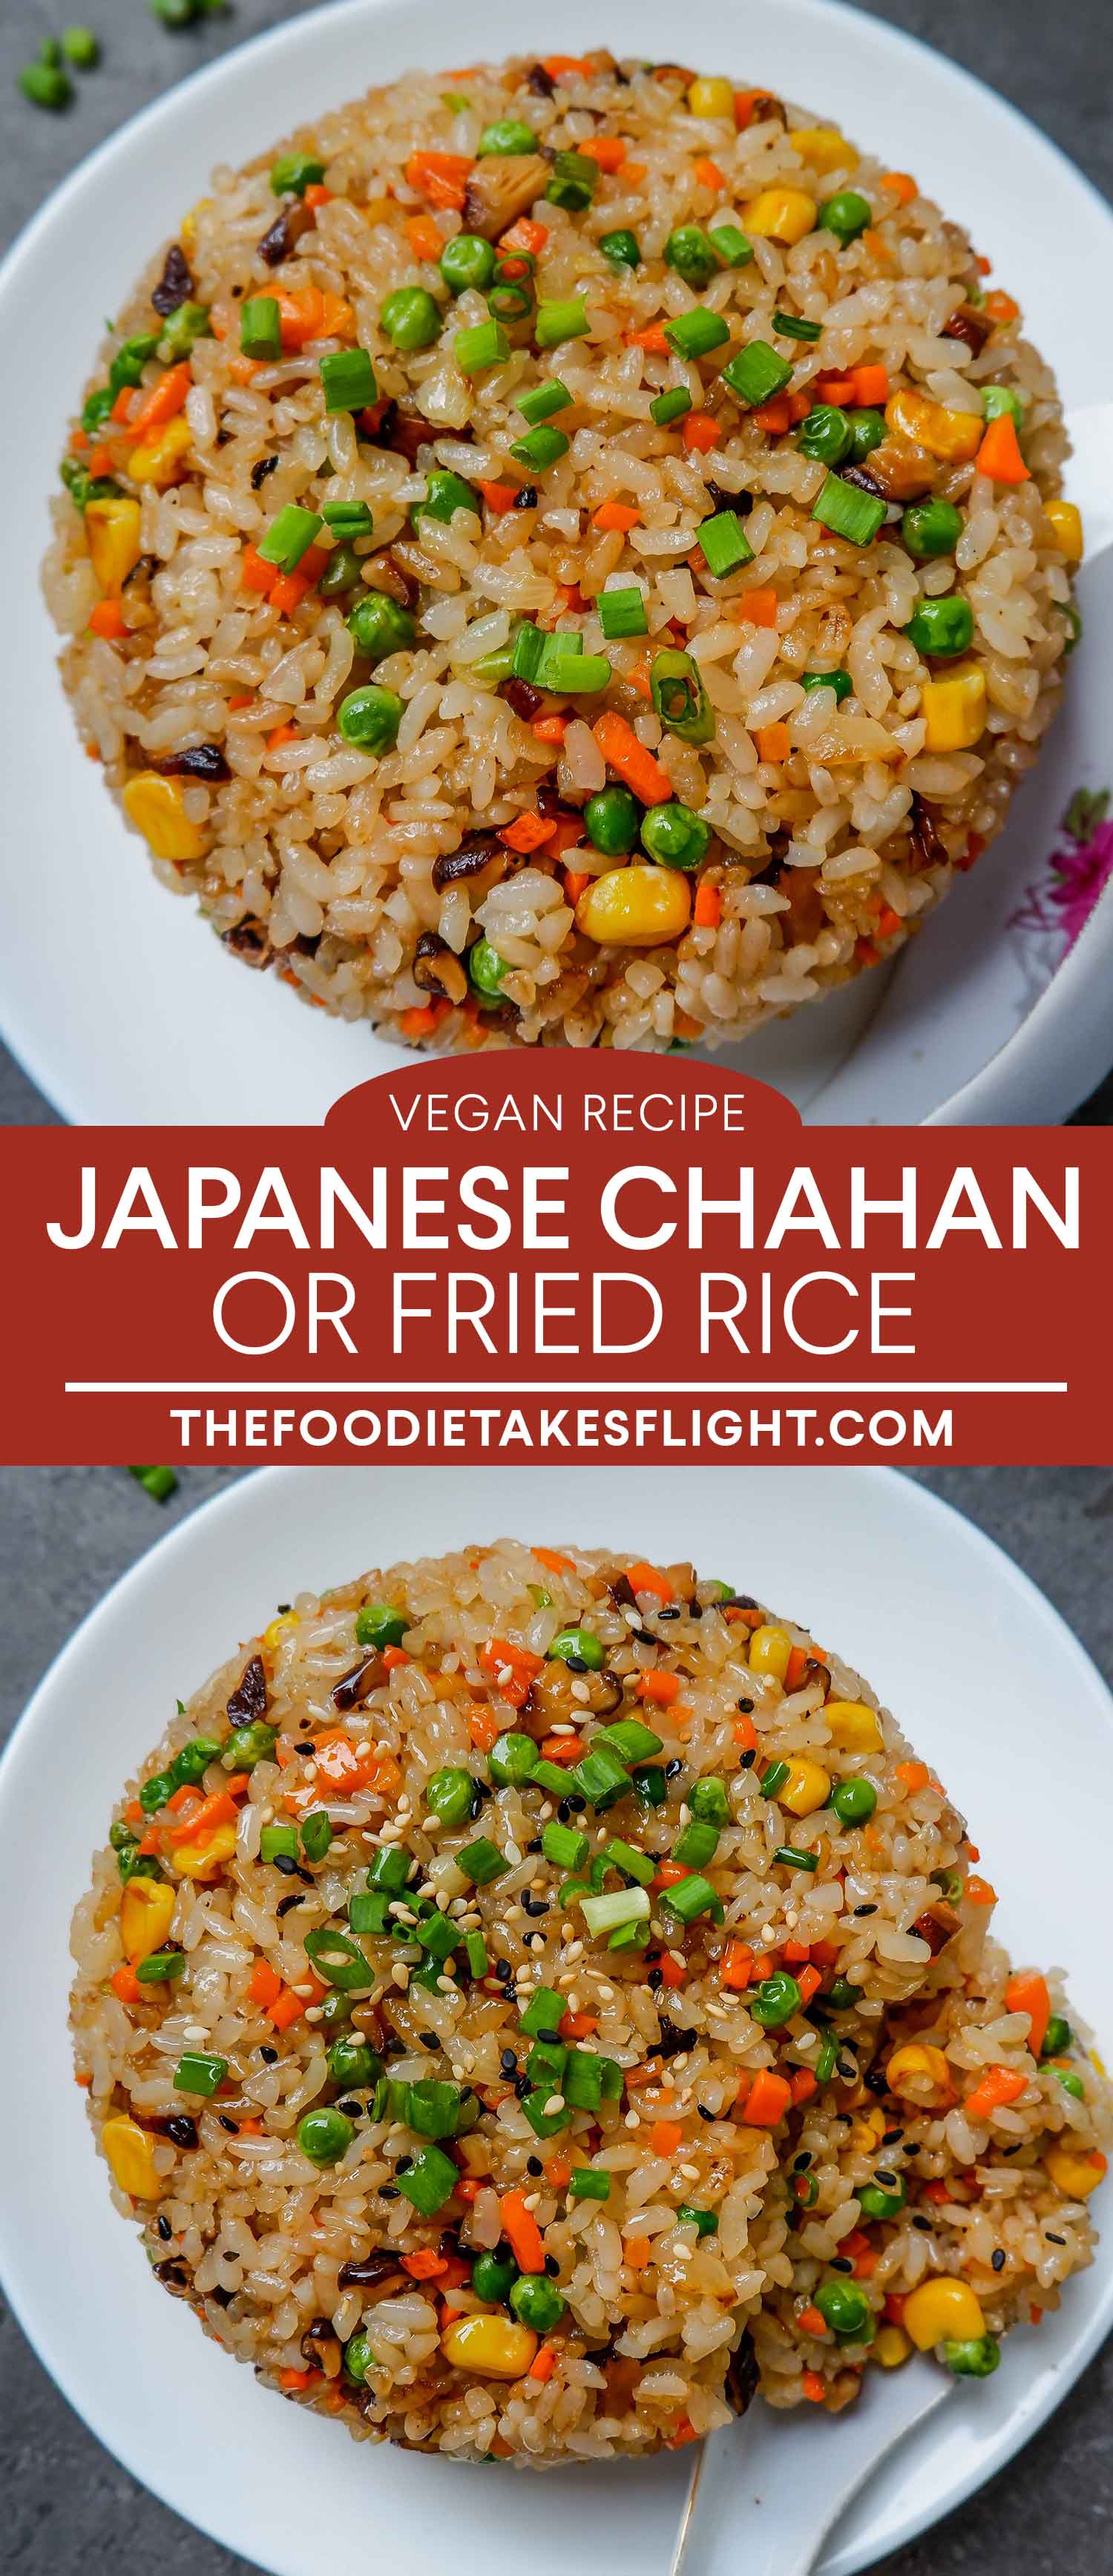 Japanese Chahan Or Fried Rice Vegan Recipe Recipe Vegan Japanese Food Rice Recipes Vegan Fried Rice